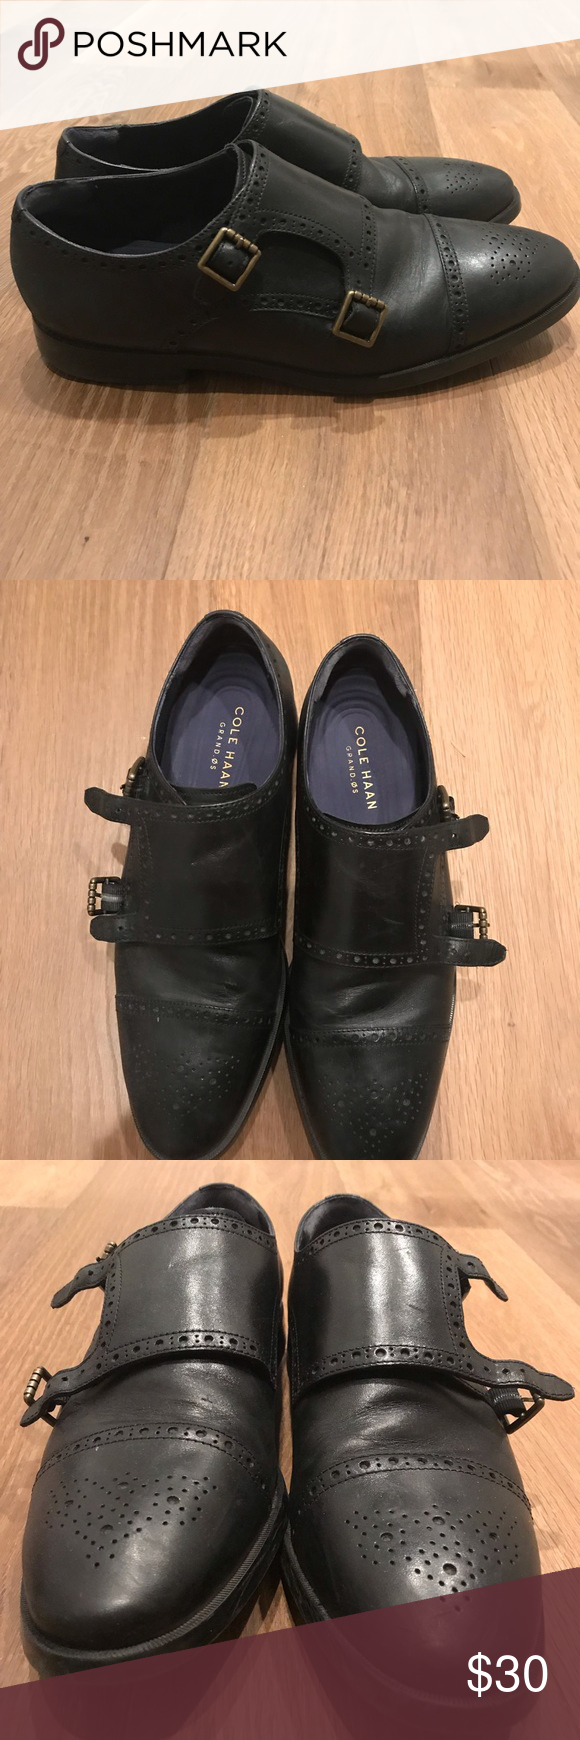 Cole Haan Double Monk strap oxford size